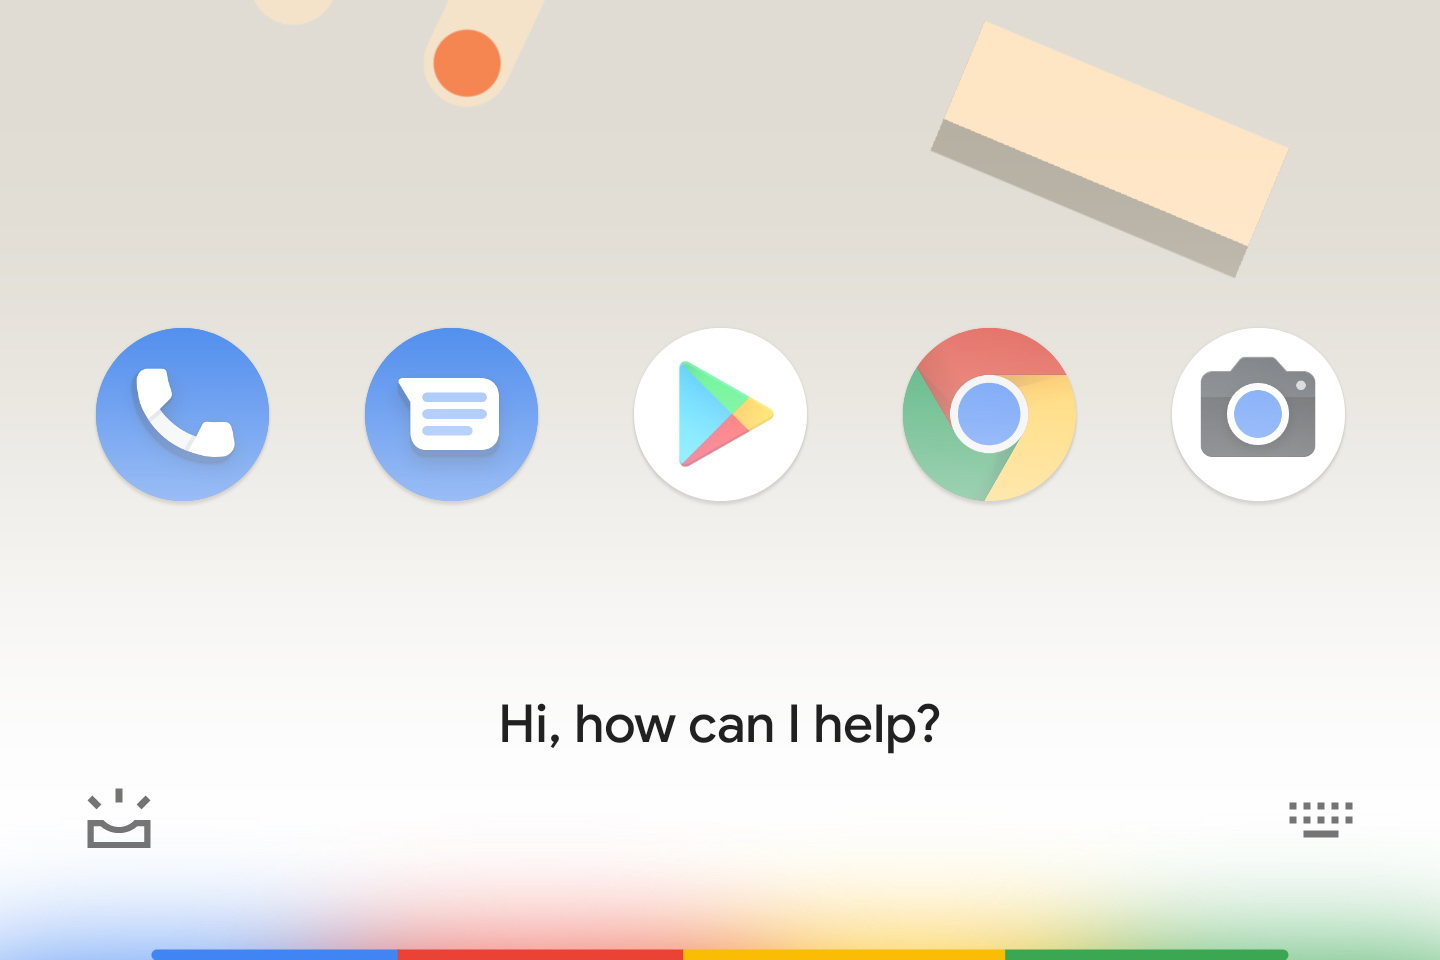 The new Google Assistant interface has colors fade-in from the bottom of the screen.